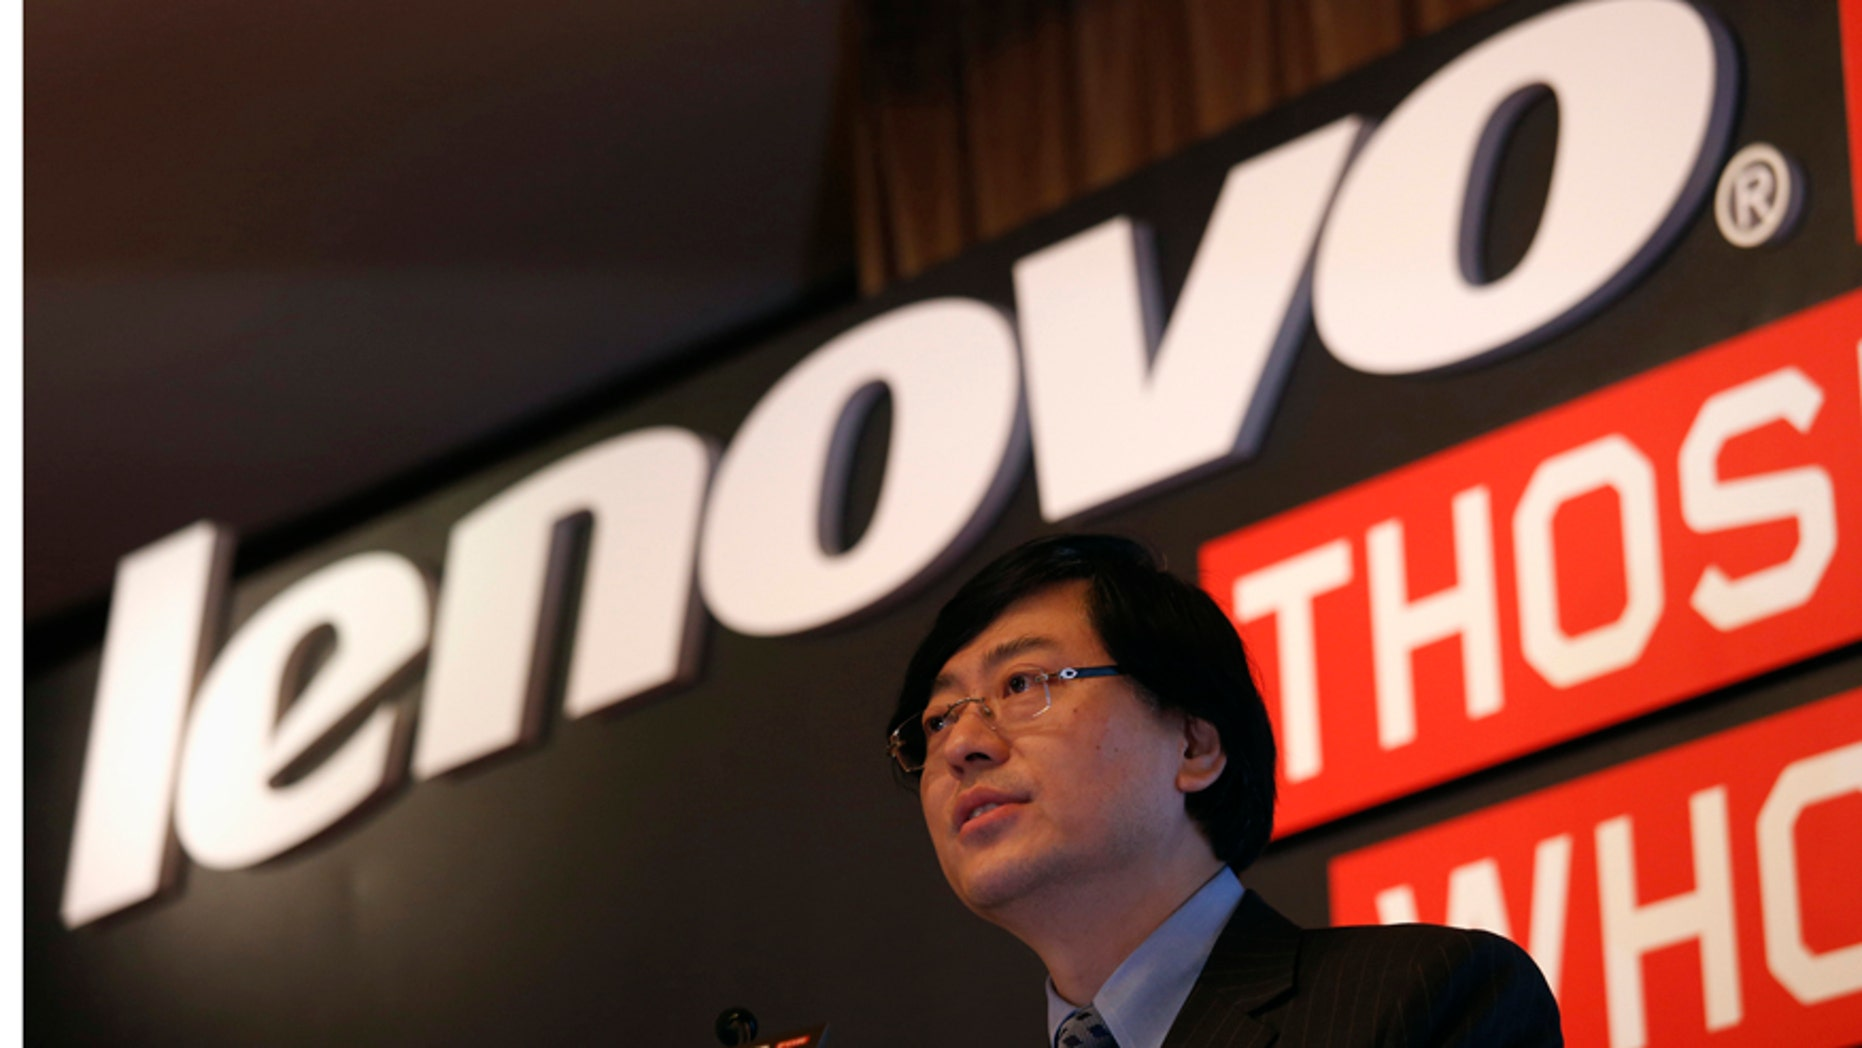 Lenovo Chairman and Chief Executive Officer Yang Yuanqing speaks during a news conference announcing the company's annual results in Hong Kong May 21, 2014.